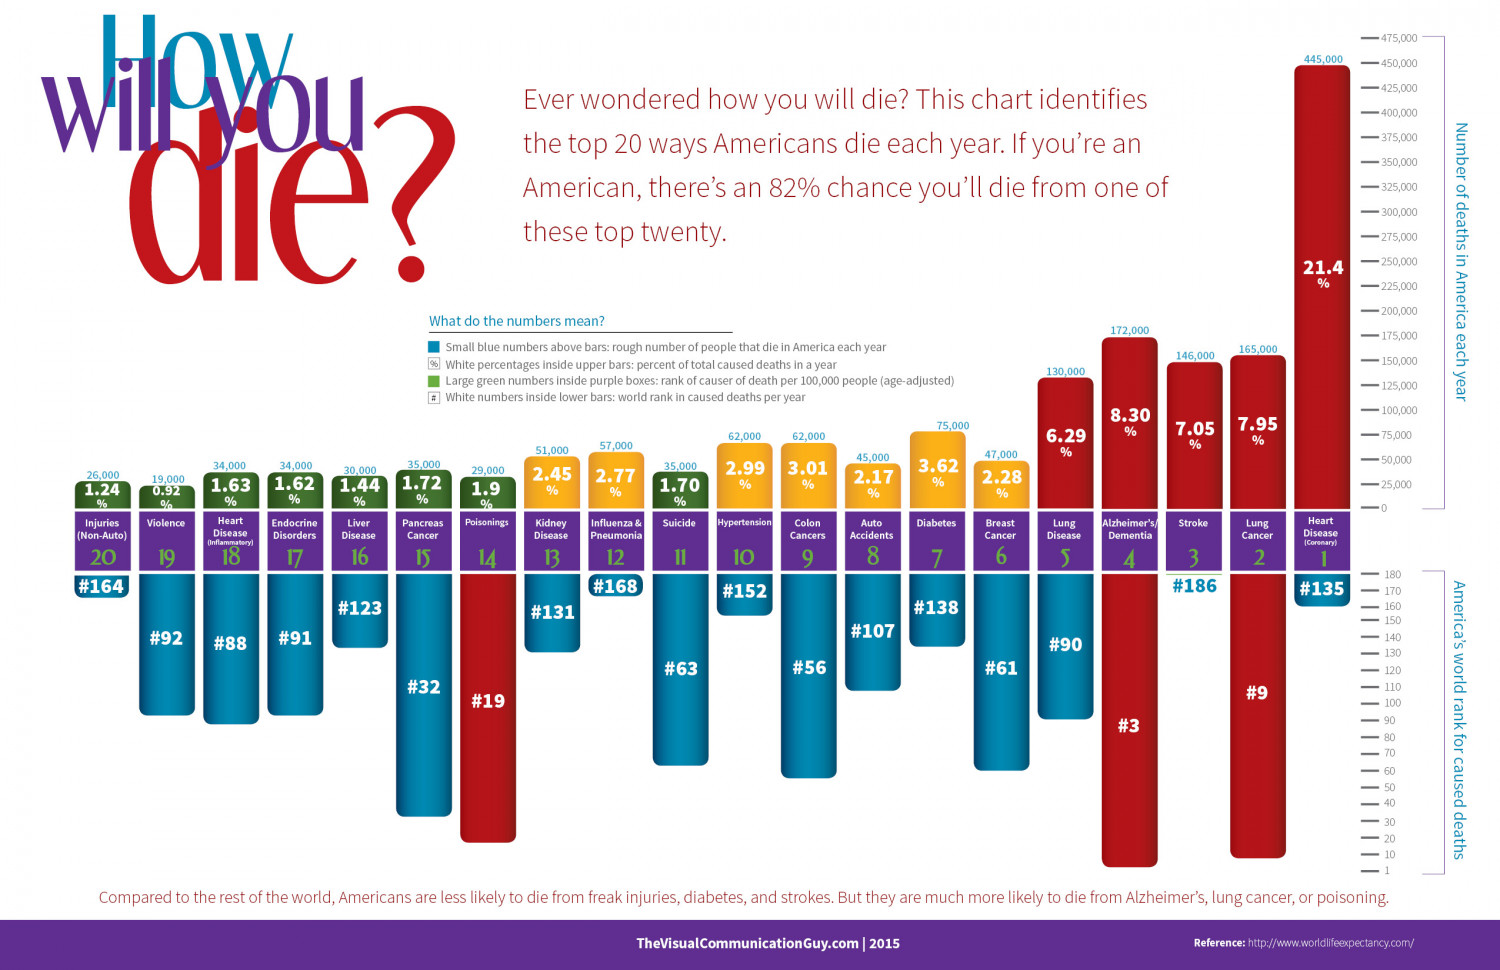 How Will You Die? Top 20 Leading Causes of Death in America Infographic